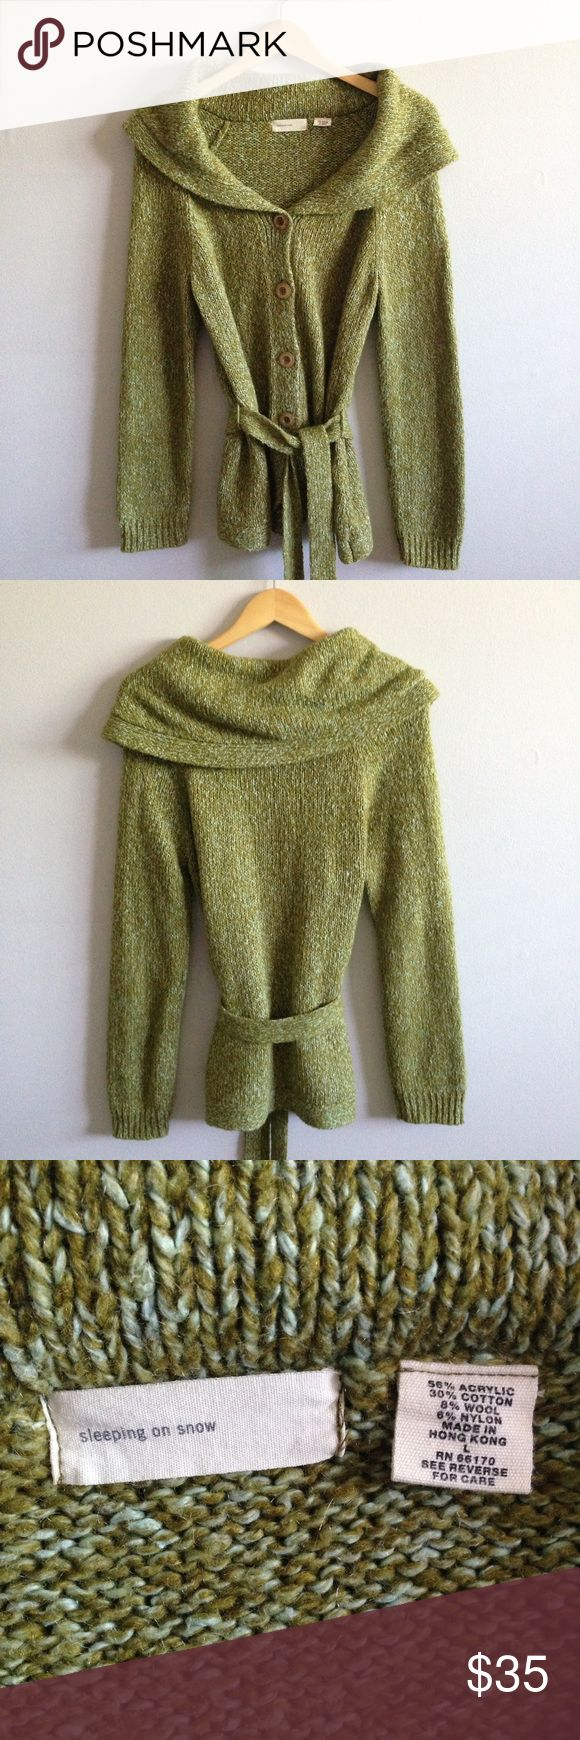 SALE * Sleeping On Snow Cowl Neck Sweater GUC with some pilling Anthropologie Sweaters Cardigans